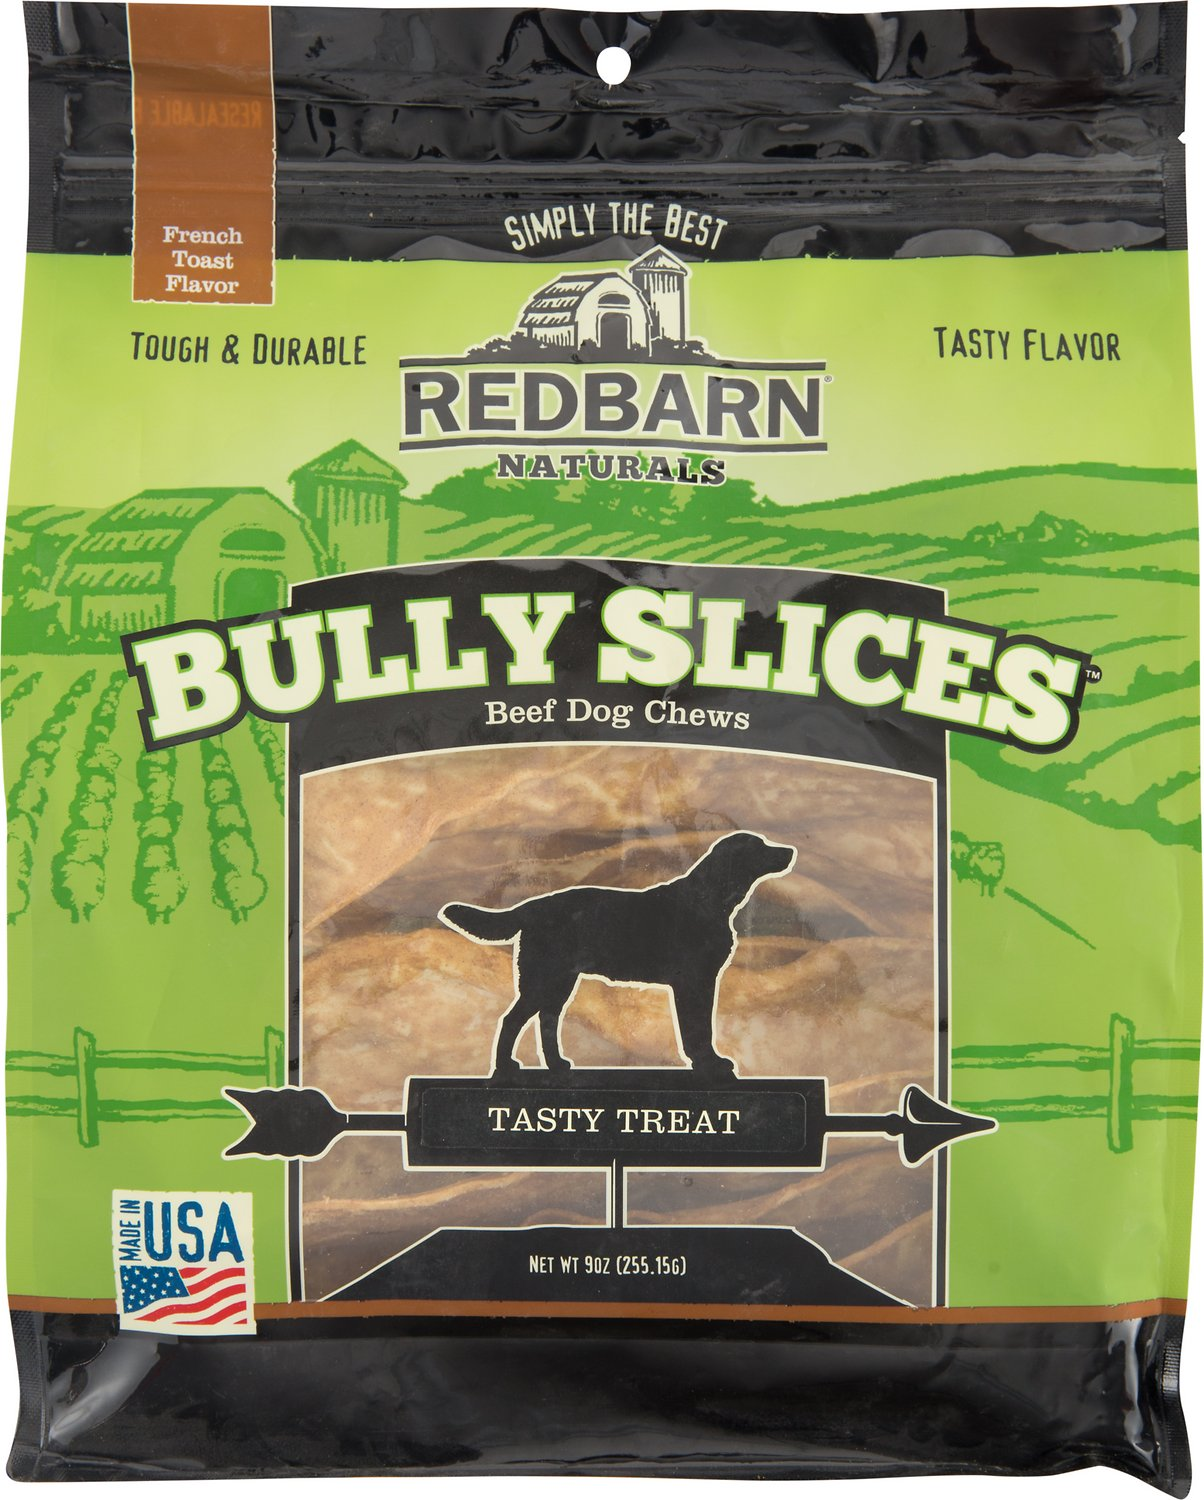 Redbarn Naturals Bully Slices French Toast Flavor Beef Dog Treats, 9-oz bag